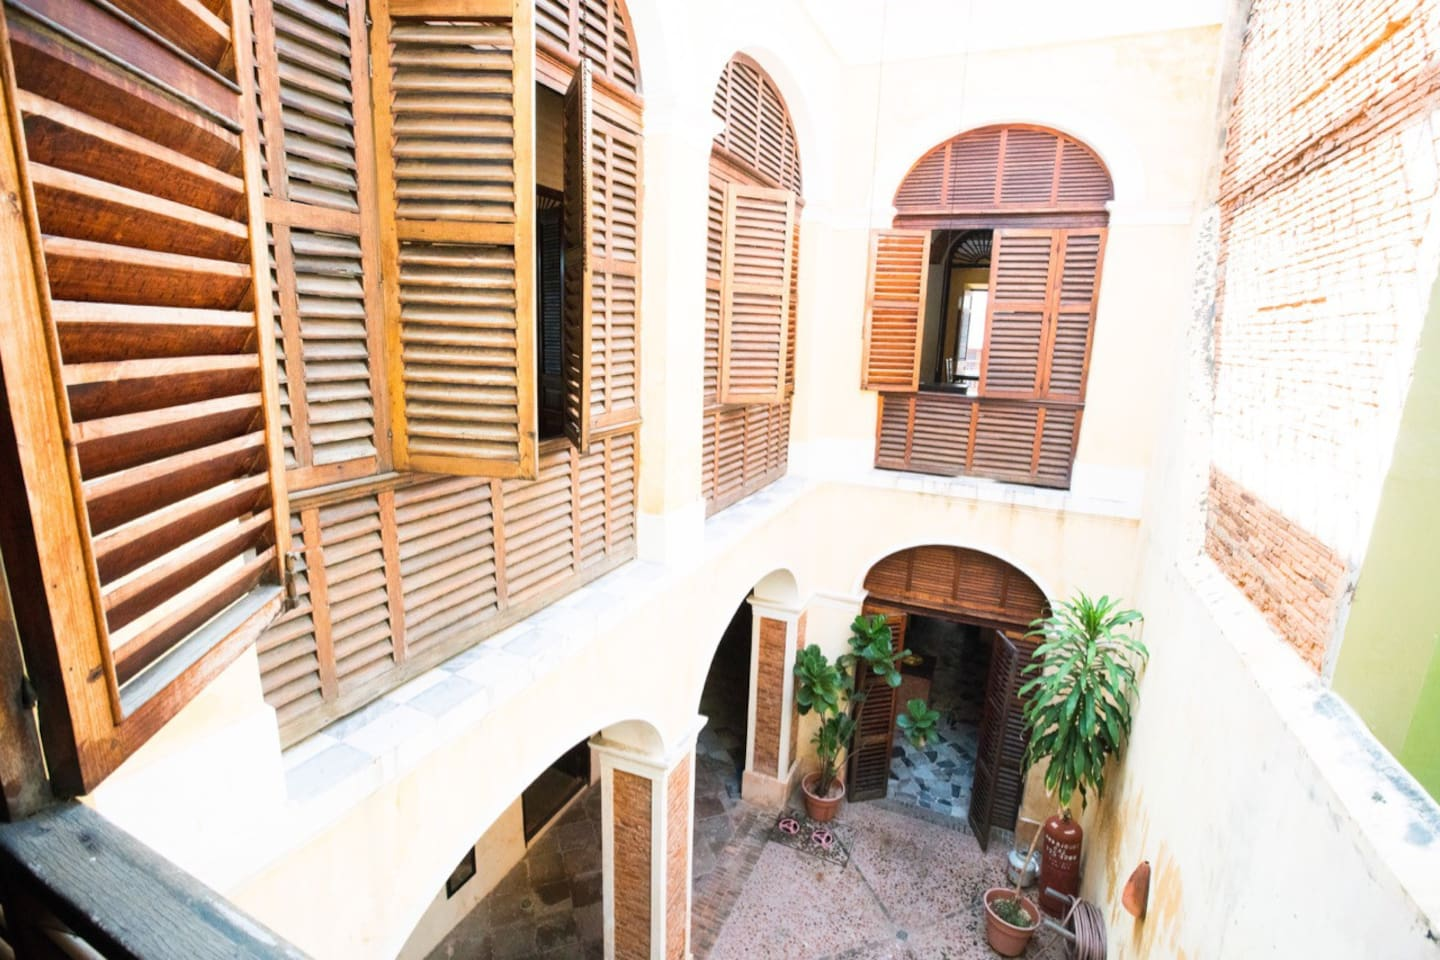 Take a peak into the downstairs interior courtyard as you listen to the peaceful sound of the fountain. Underneath hides a 36,000 gallon underground water cistern that supplies the house with its own water source.